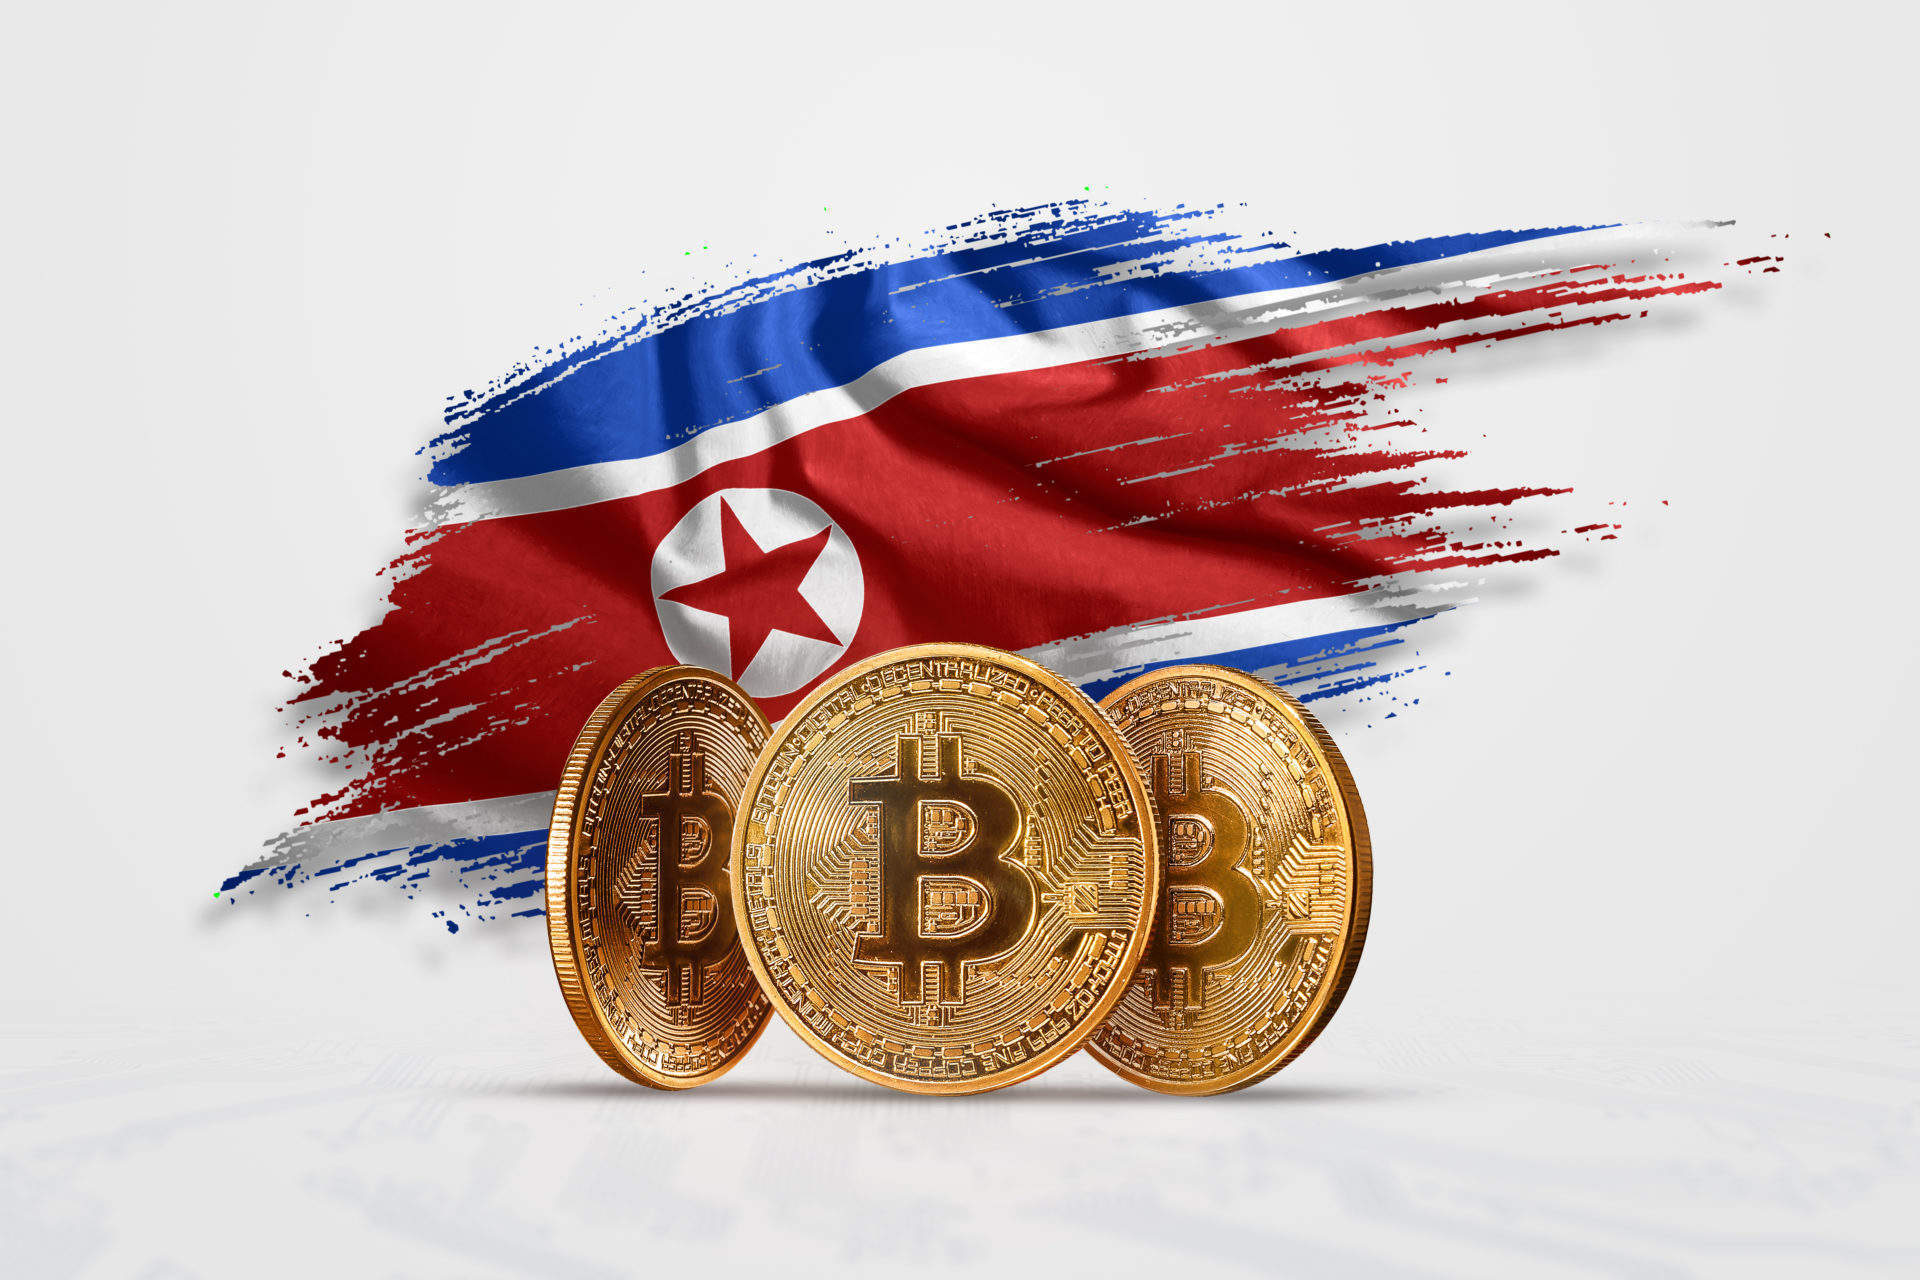 North Korea cryptocurrency scam raised funds for Kim regime